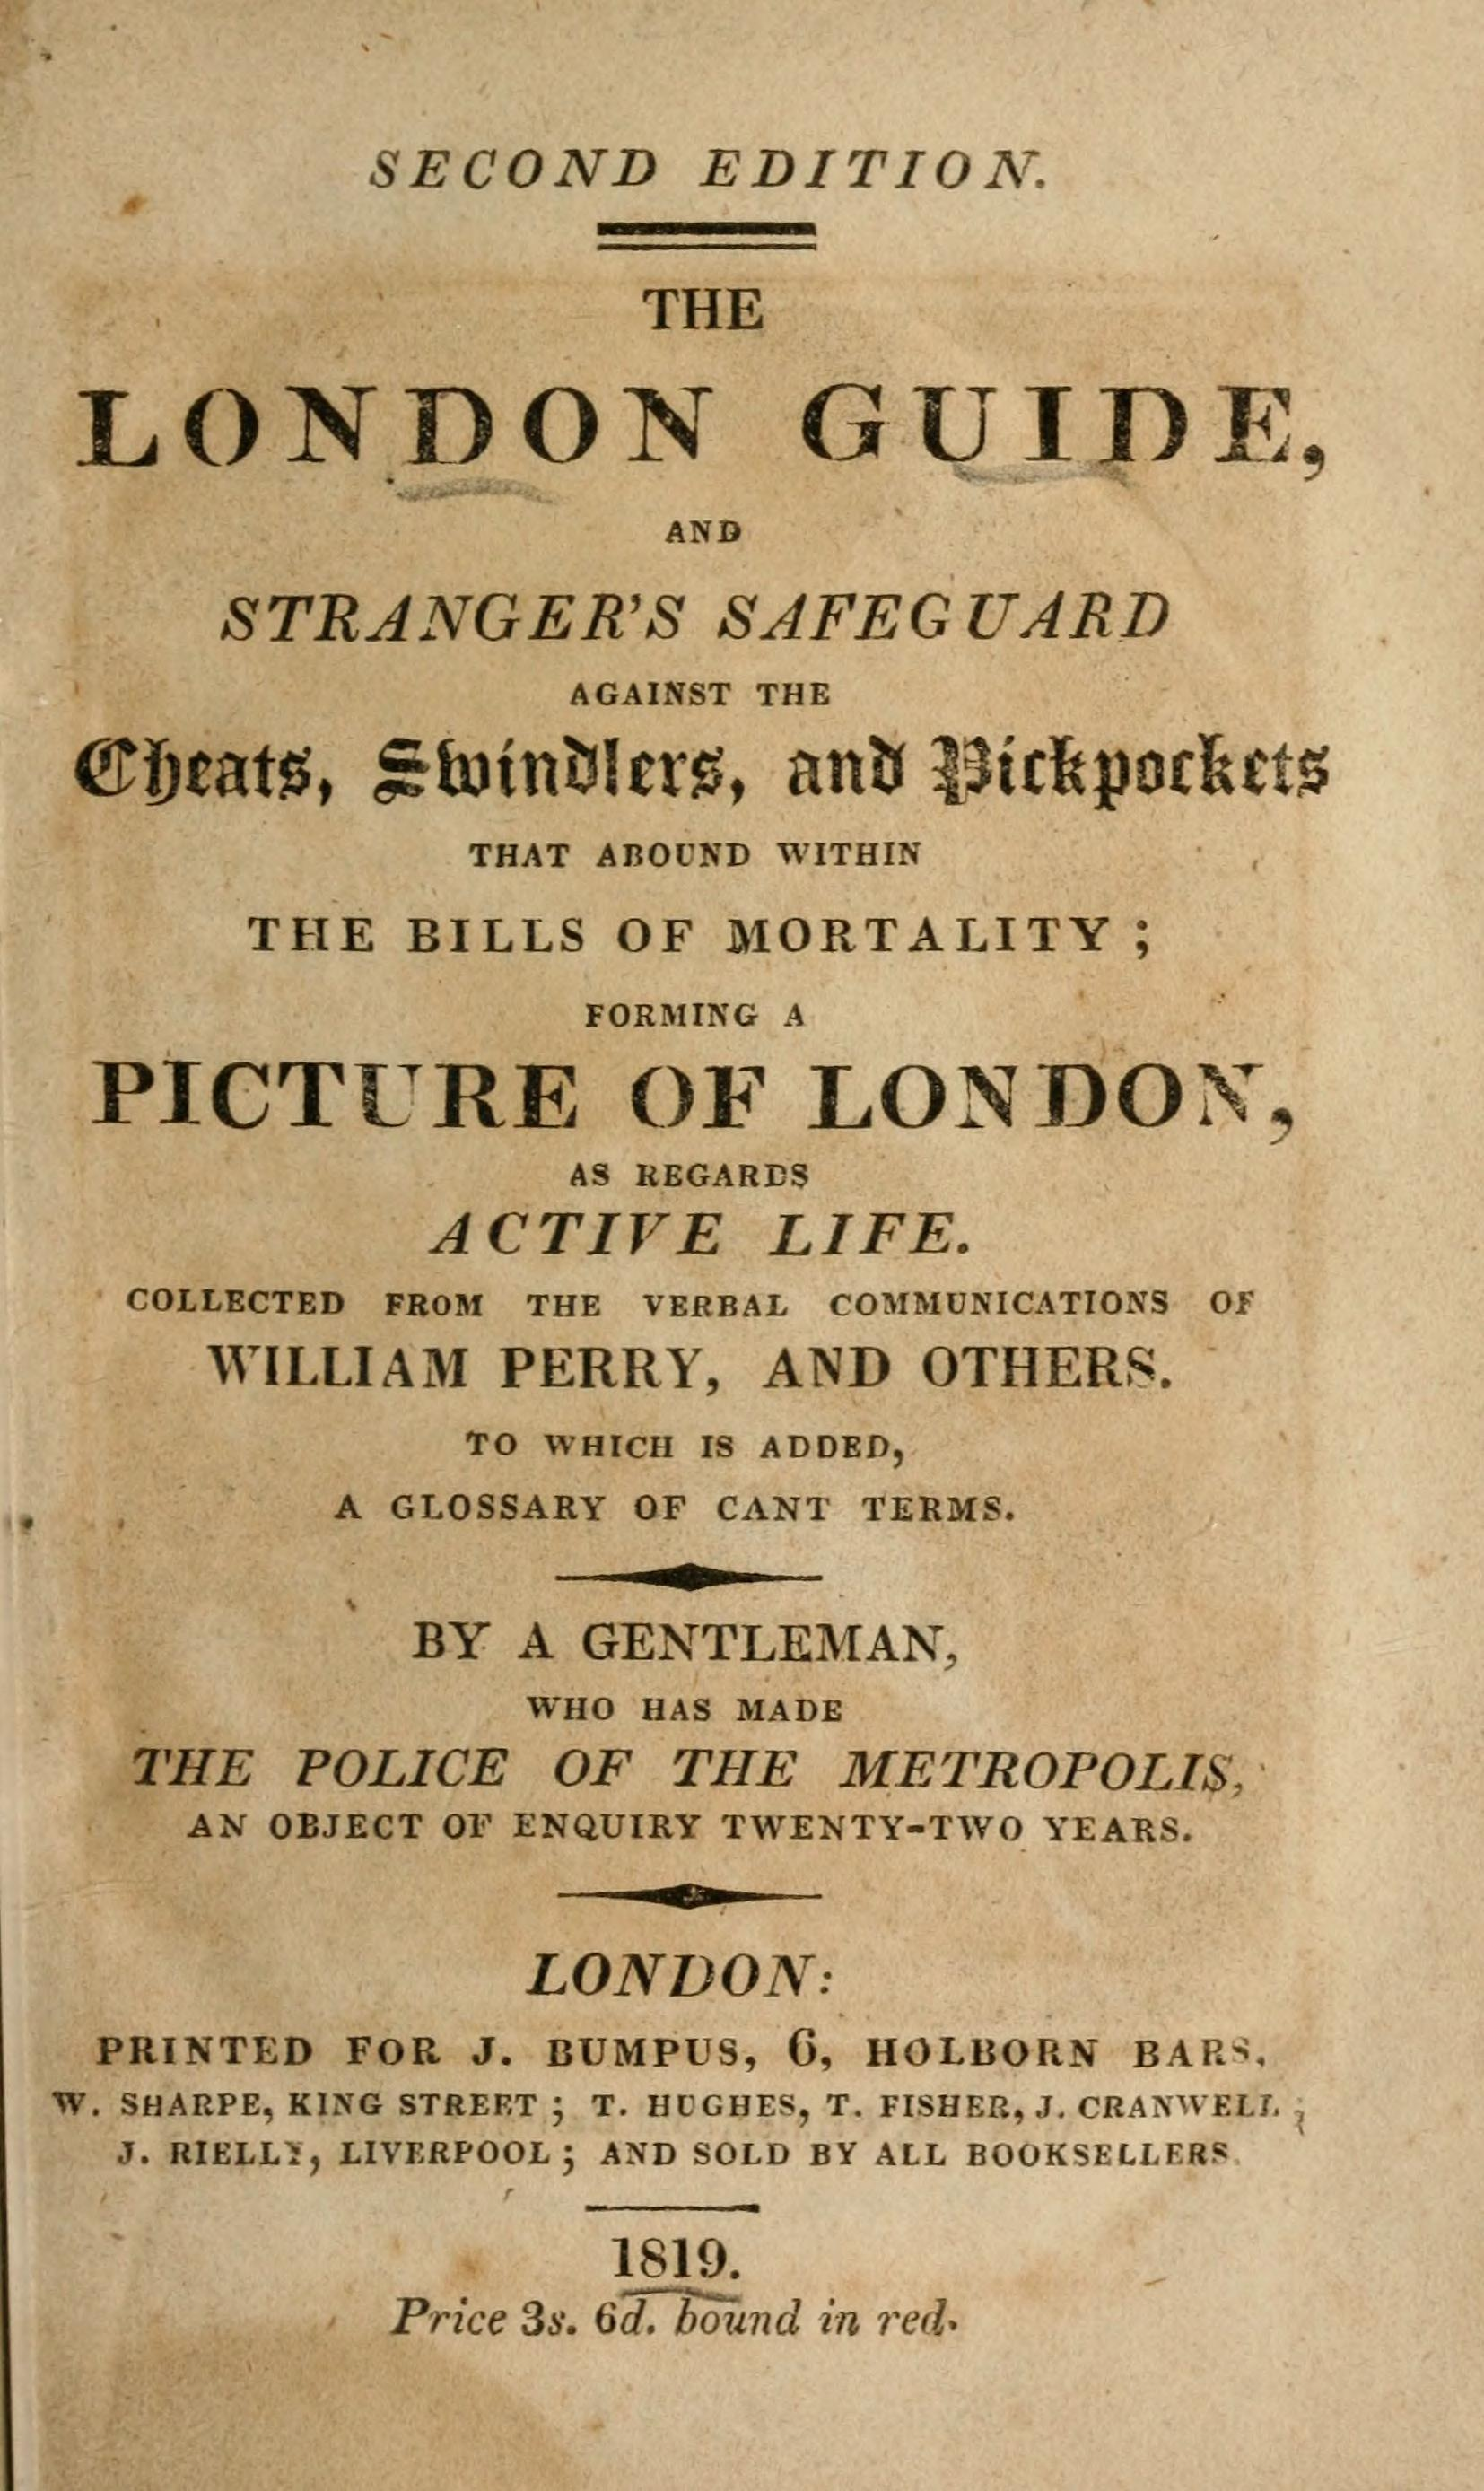 he London Guide and Stranger's Safeguard against the Cheats, Swindlers, and Pickpockets (1819)